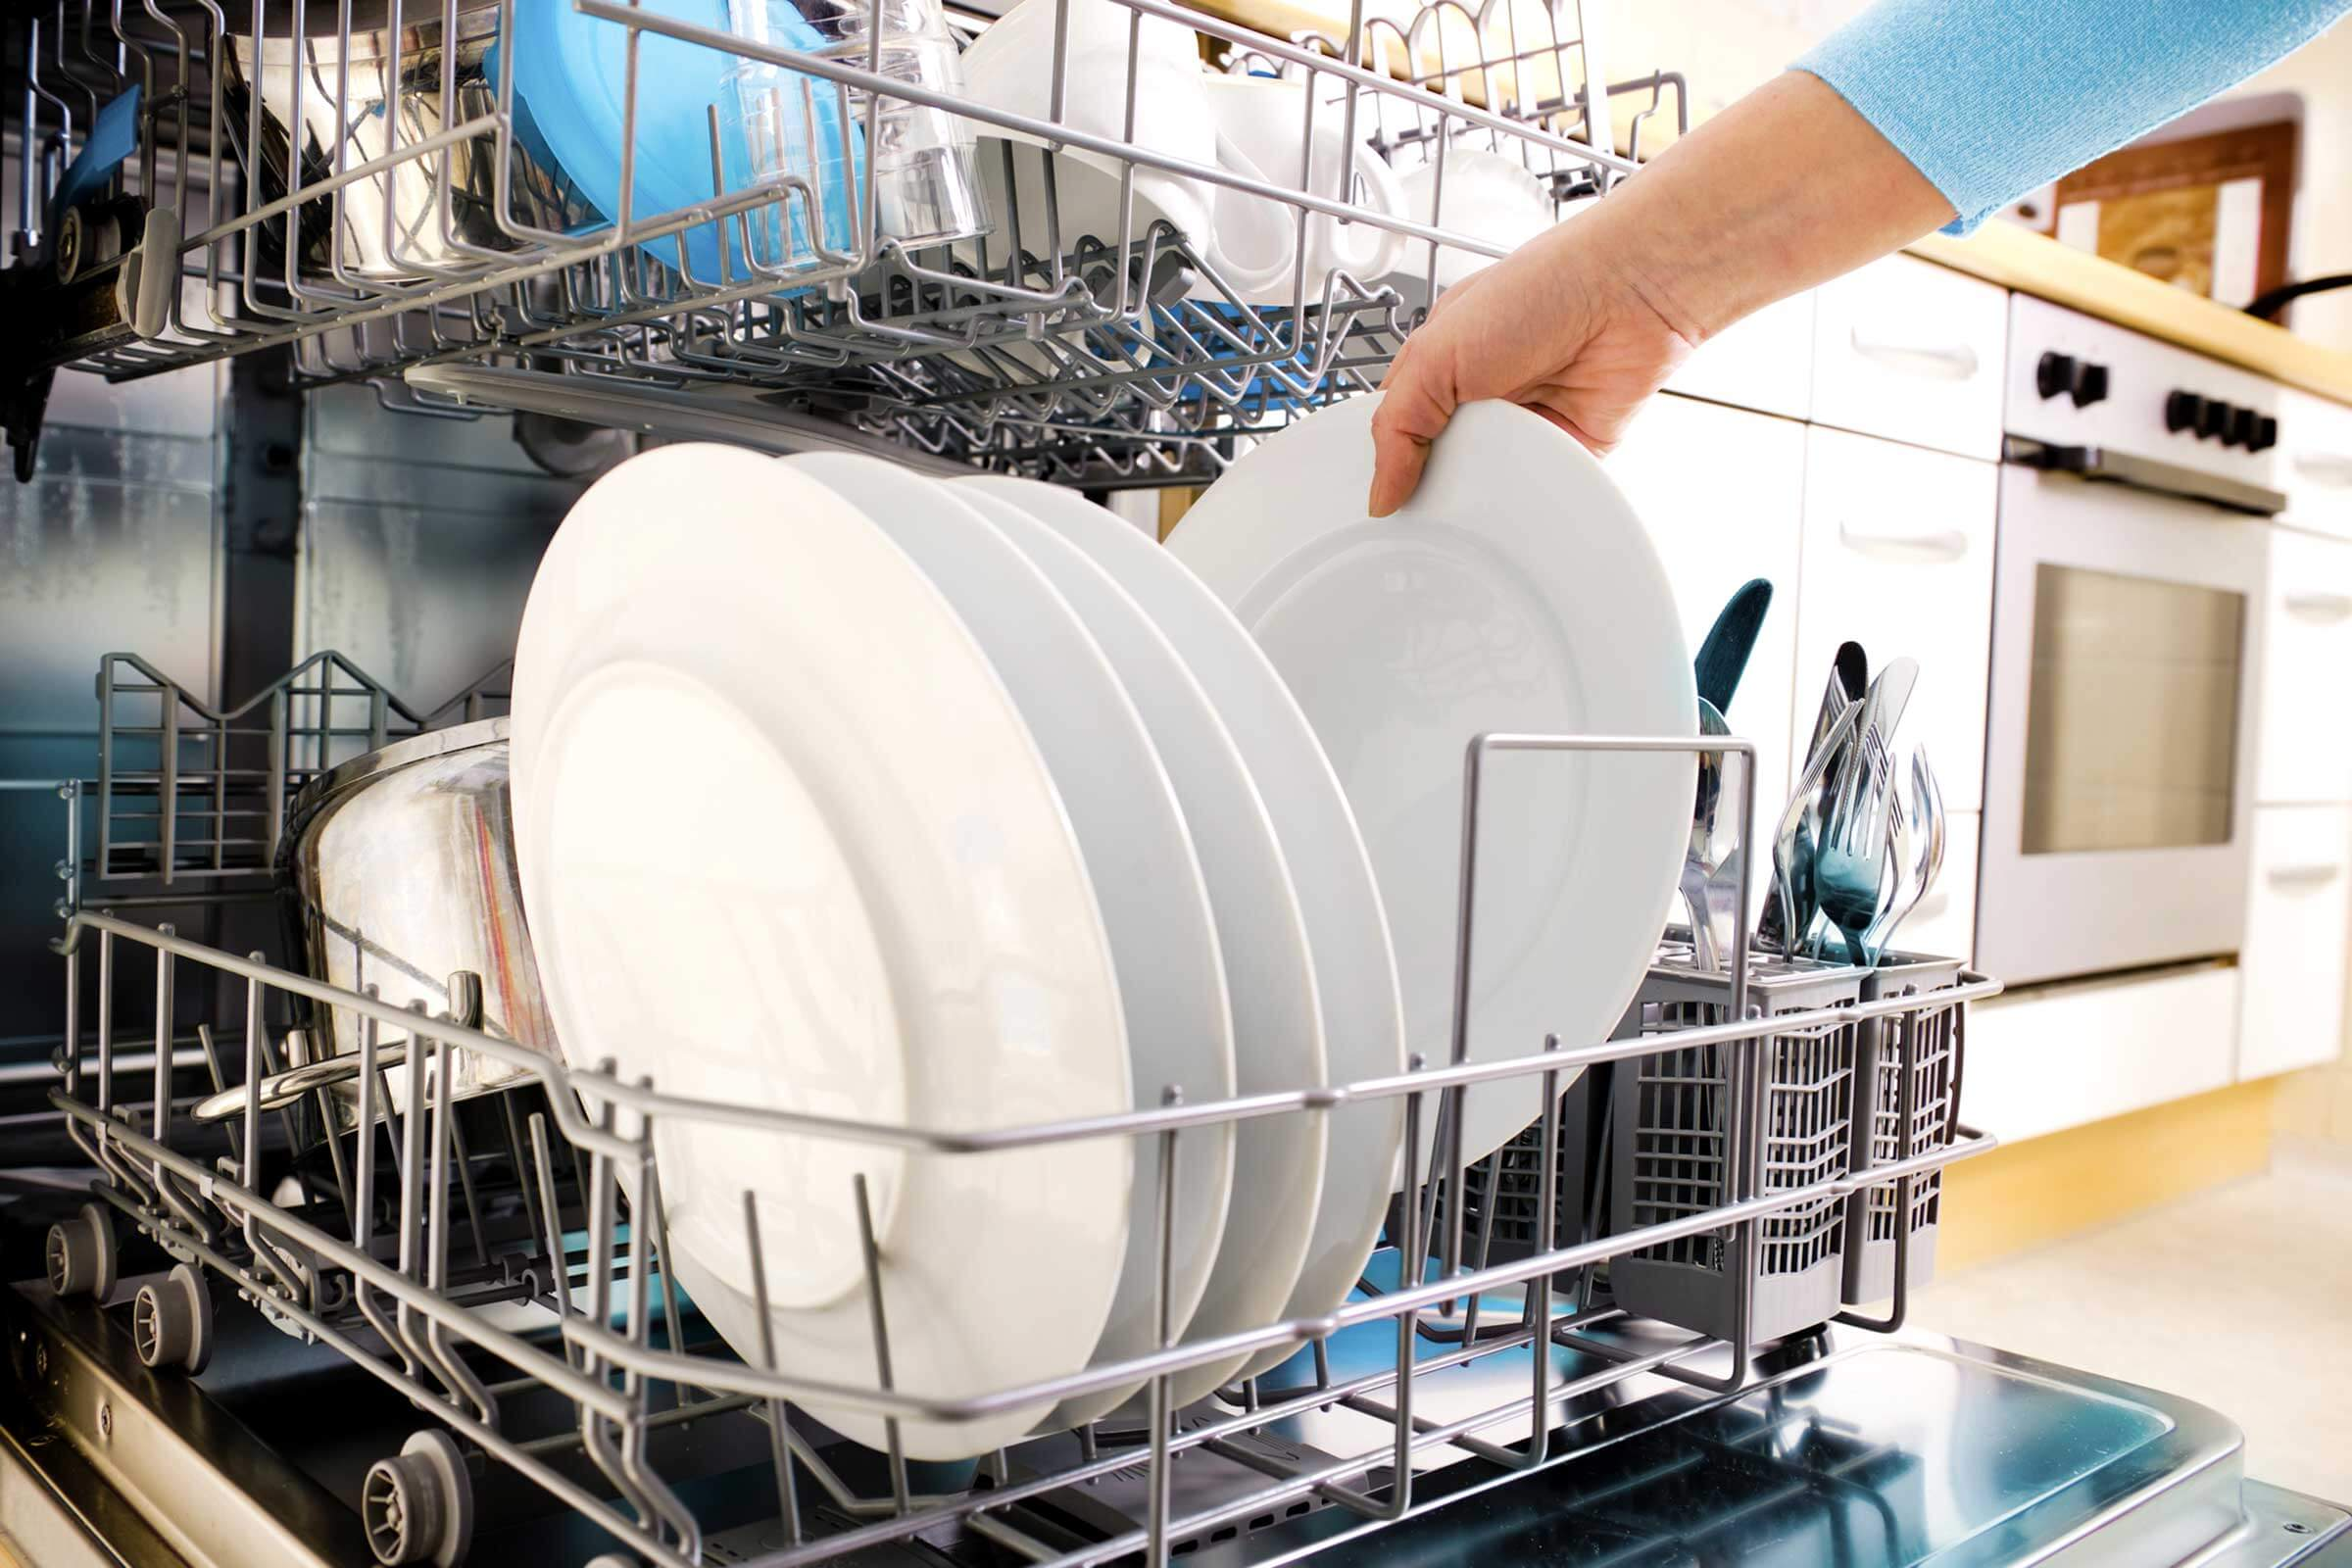 Basic rules for cleaning dishwasher